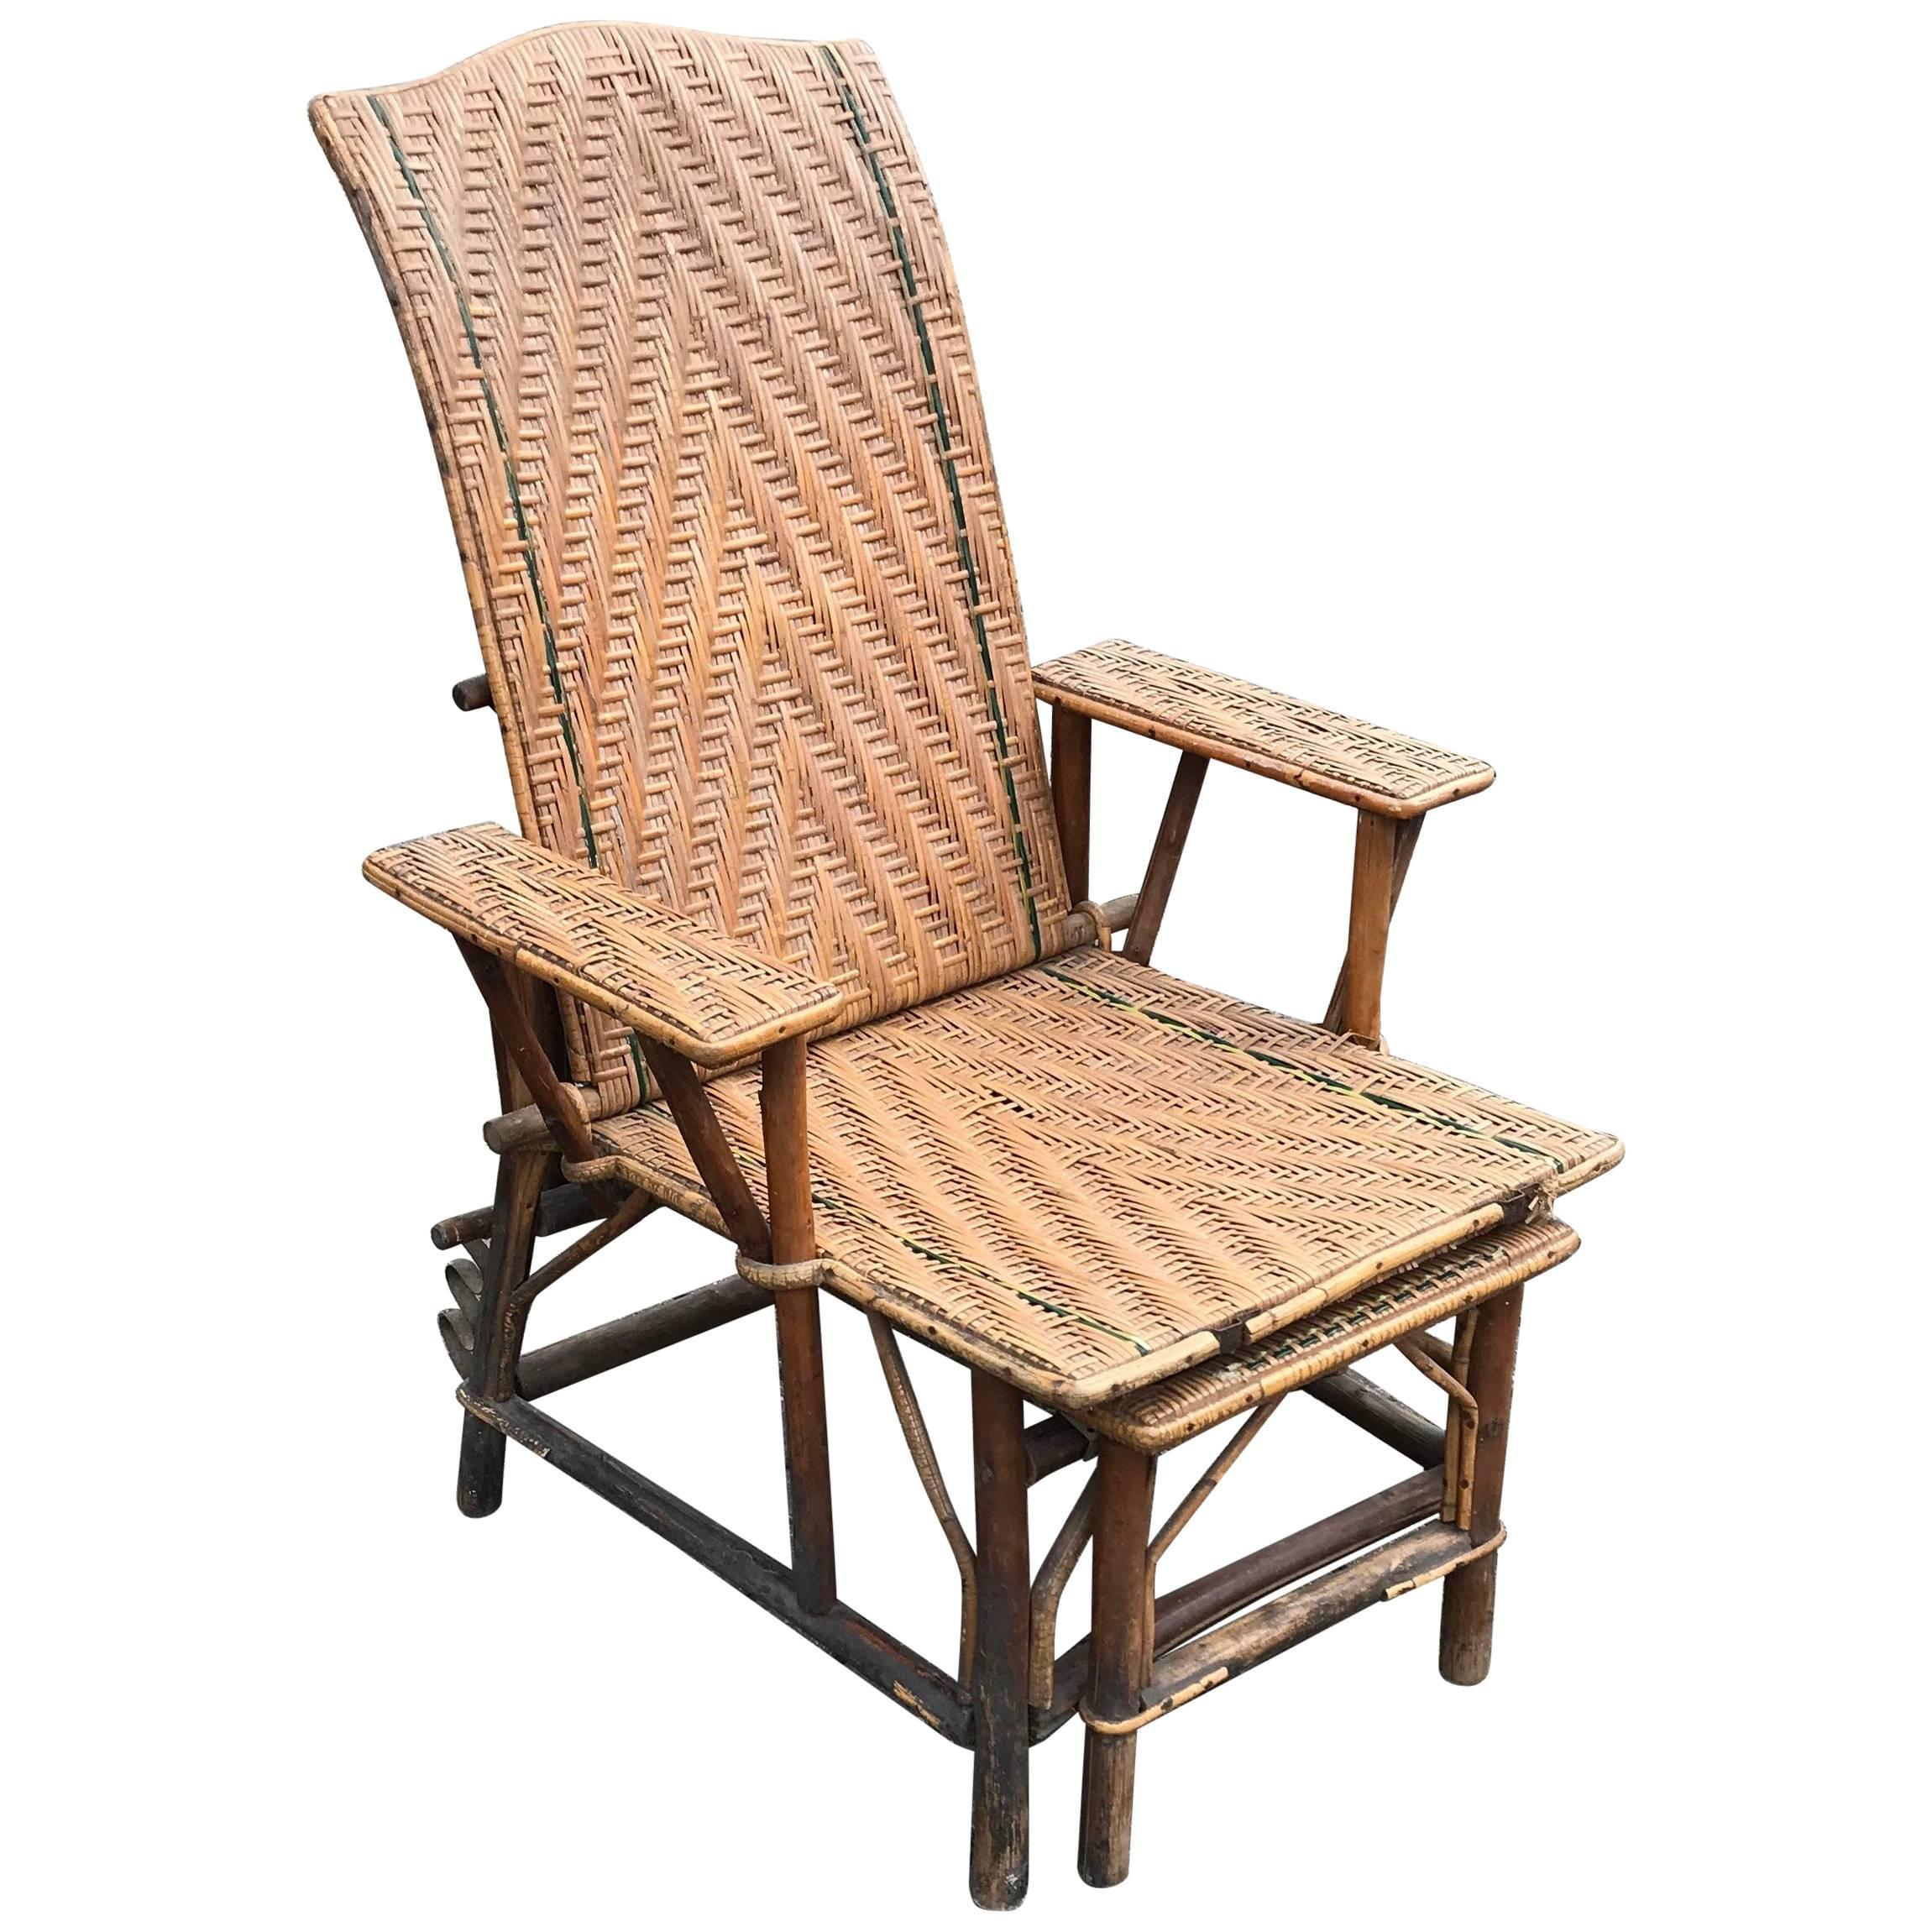 Superieur Antique Rattan And Wood Deck Chair Or Lounge Chair